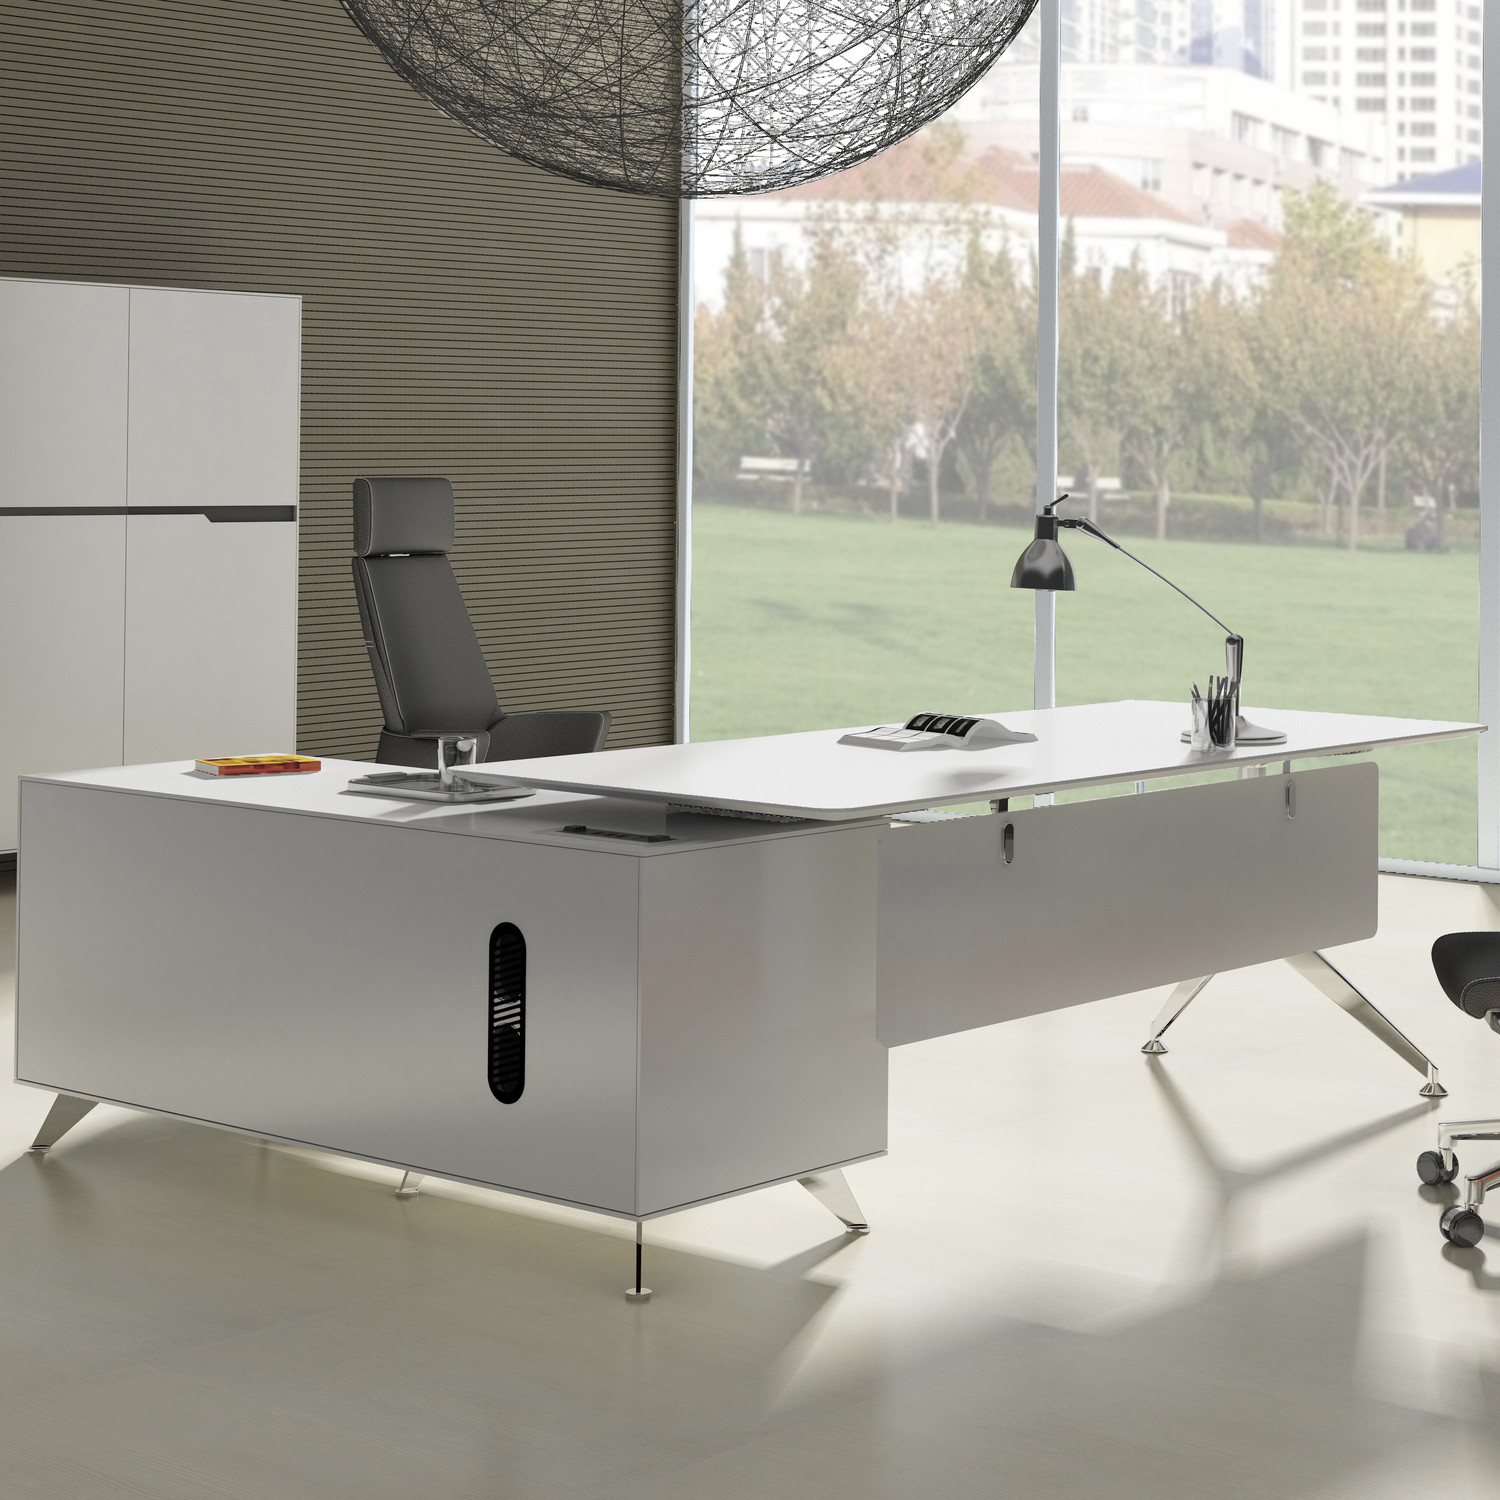 with metal a frame legs and a weightless elevated workspace this desk